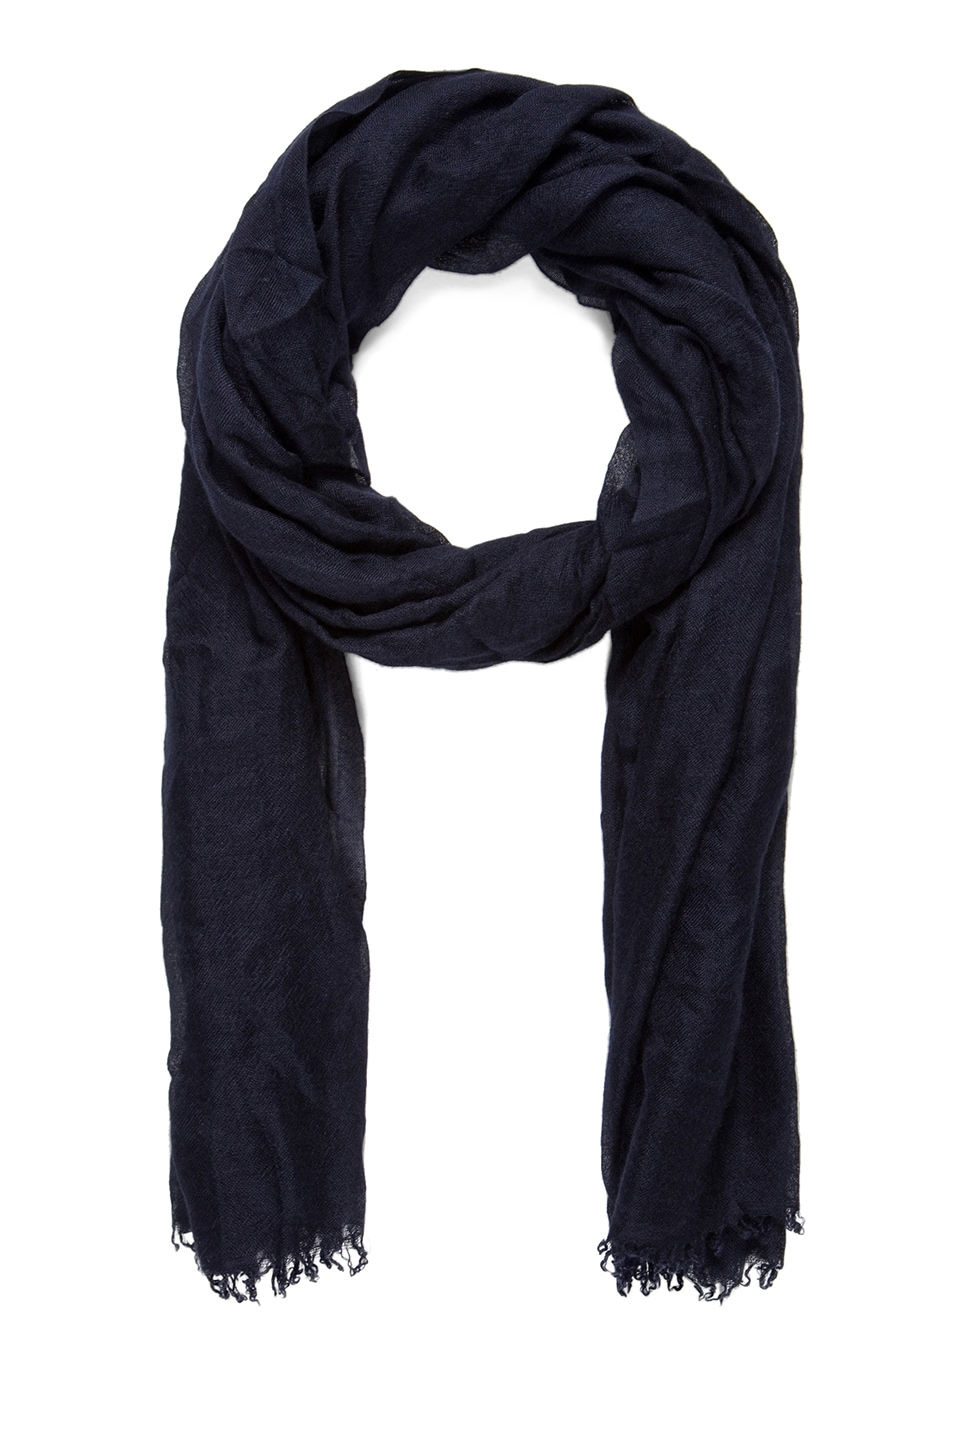 Image 1 of Faliero Sarti Dianetta Cashmere Silk Scarf in Navy